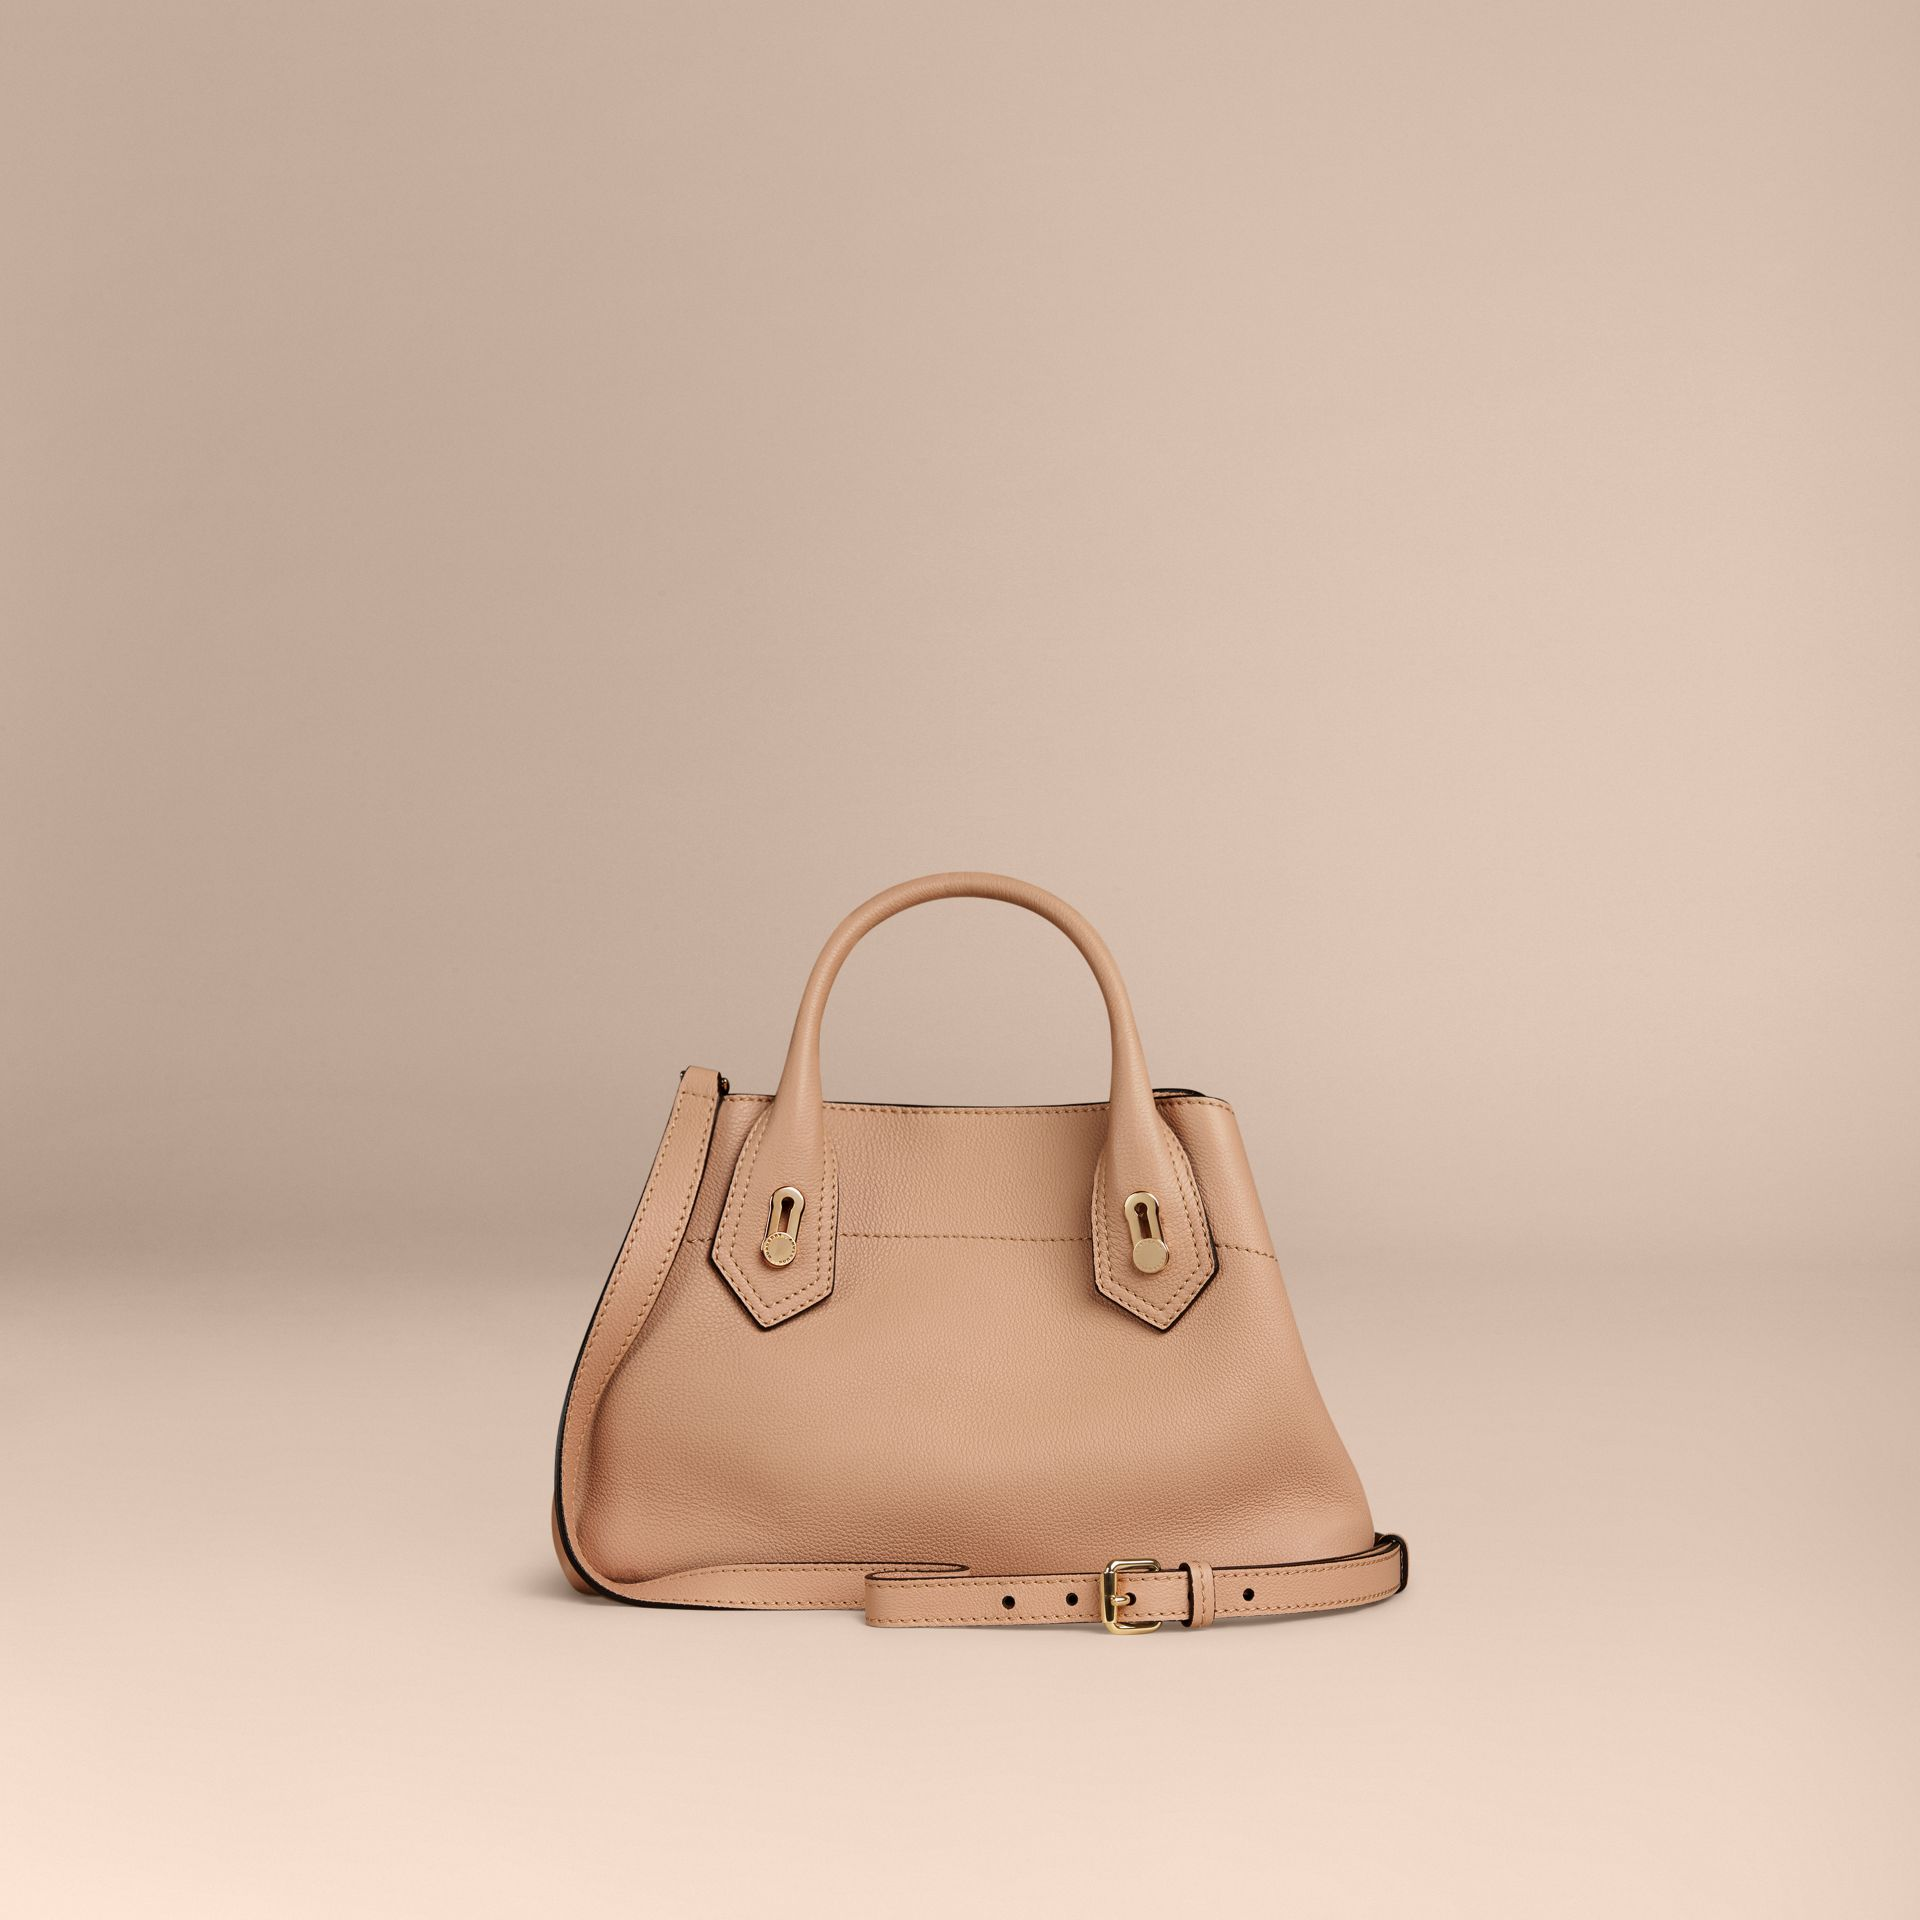 Pale apricot The Small Milton in Grainy Leather Pale Apricot - gallery image 4